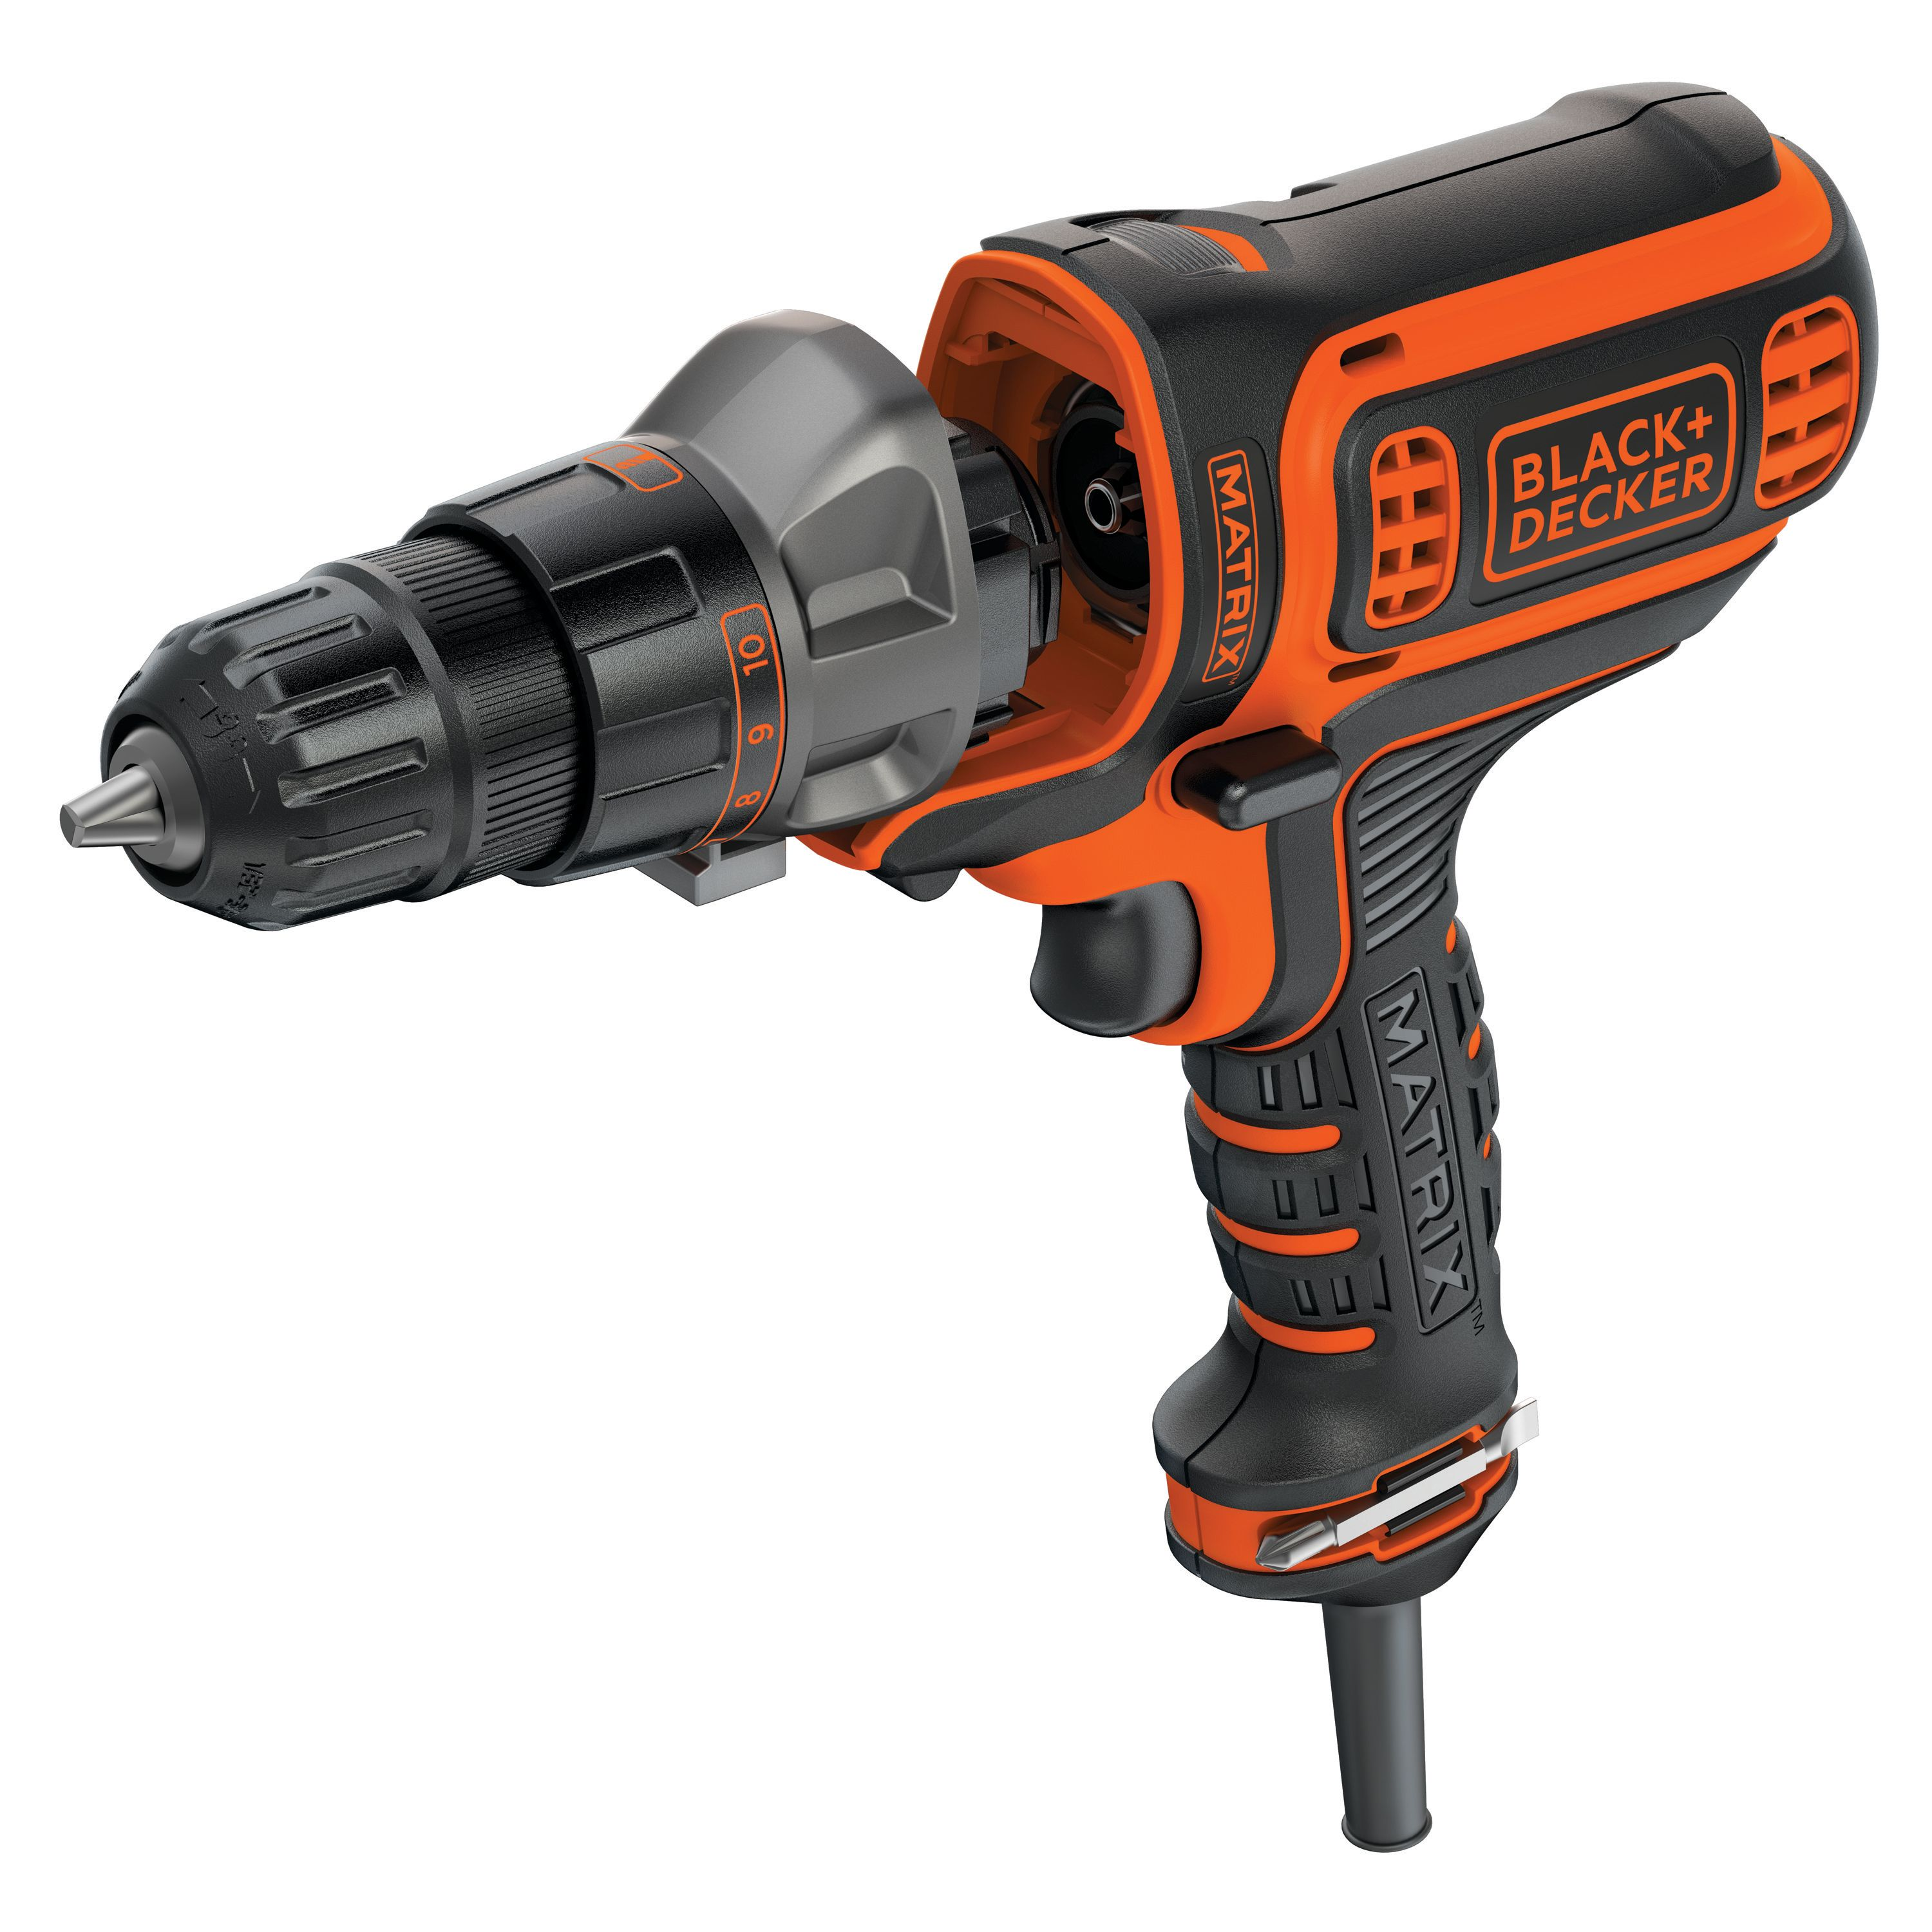 "Black & Decker BDEDMT 3 8"" Corded MATRIX Drill Driver by Stanley Black & Decker"